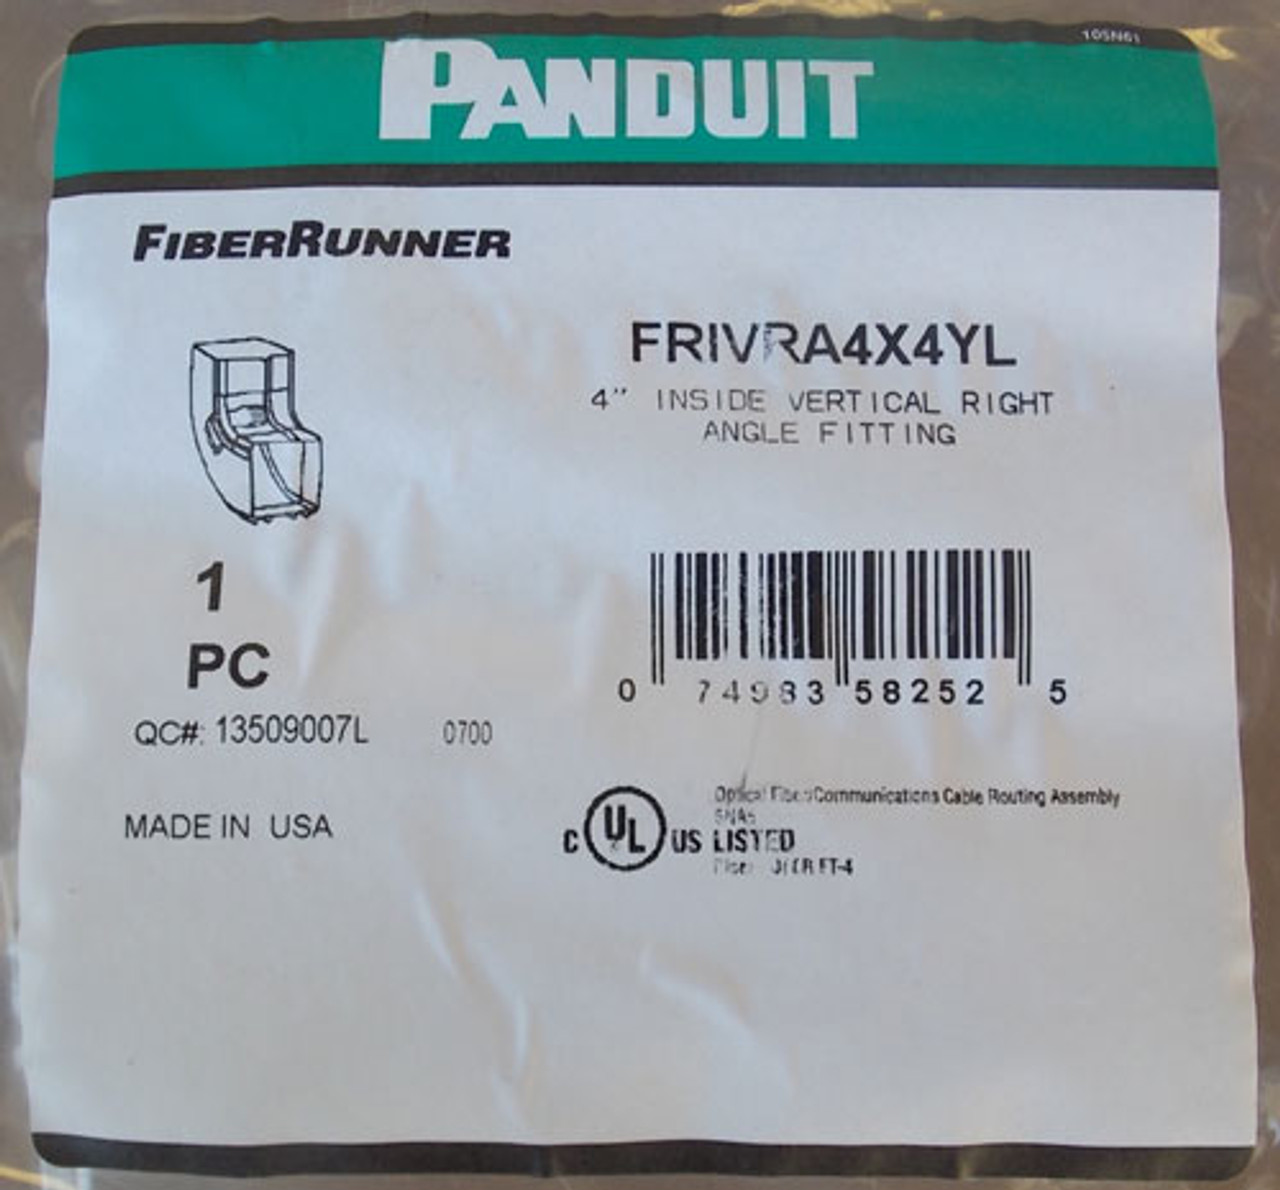 Panduit FRIVRA4X4YL FiberRunner Fitting 4x4 Inside Vert Right Angle - New